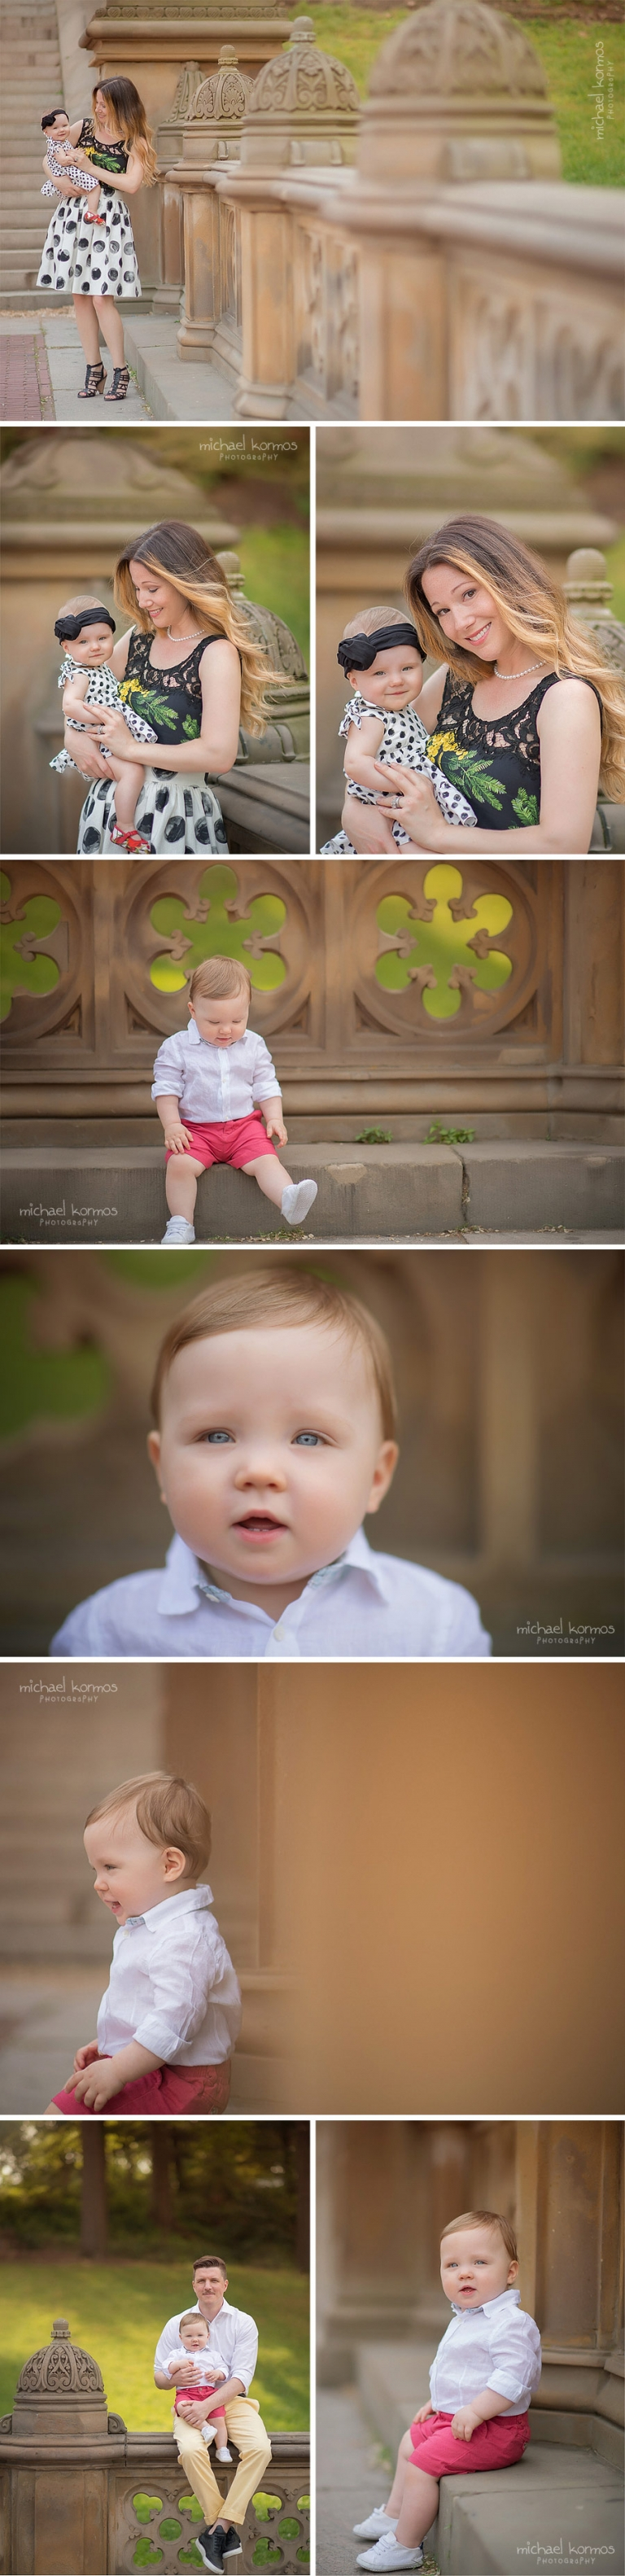 NYC best baby photographer outdoors